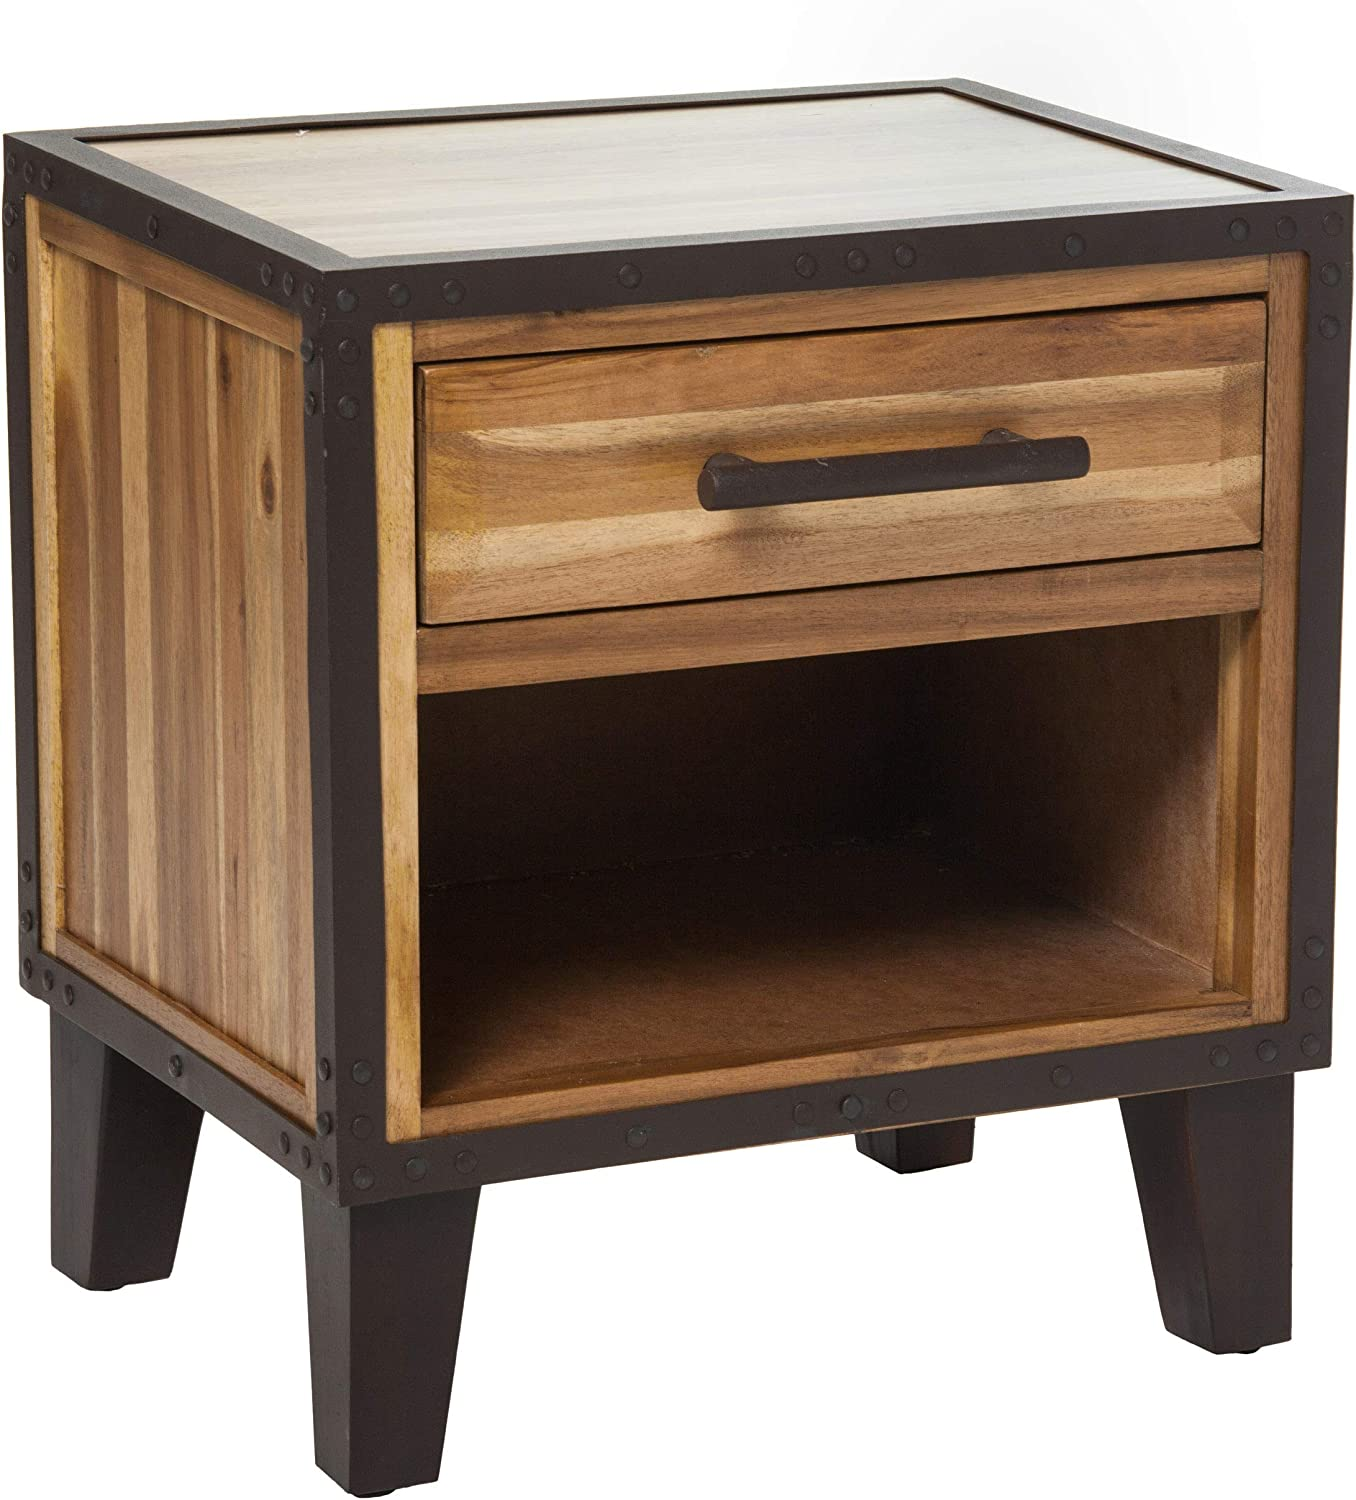 Christopher Knight Home Glendora Industrial Solid Wood Single Drawer End Table Nightstand Brown Amazon Ca Home Kitchen